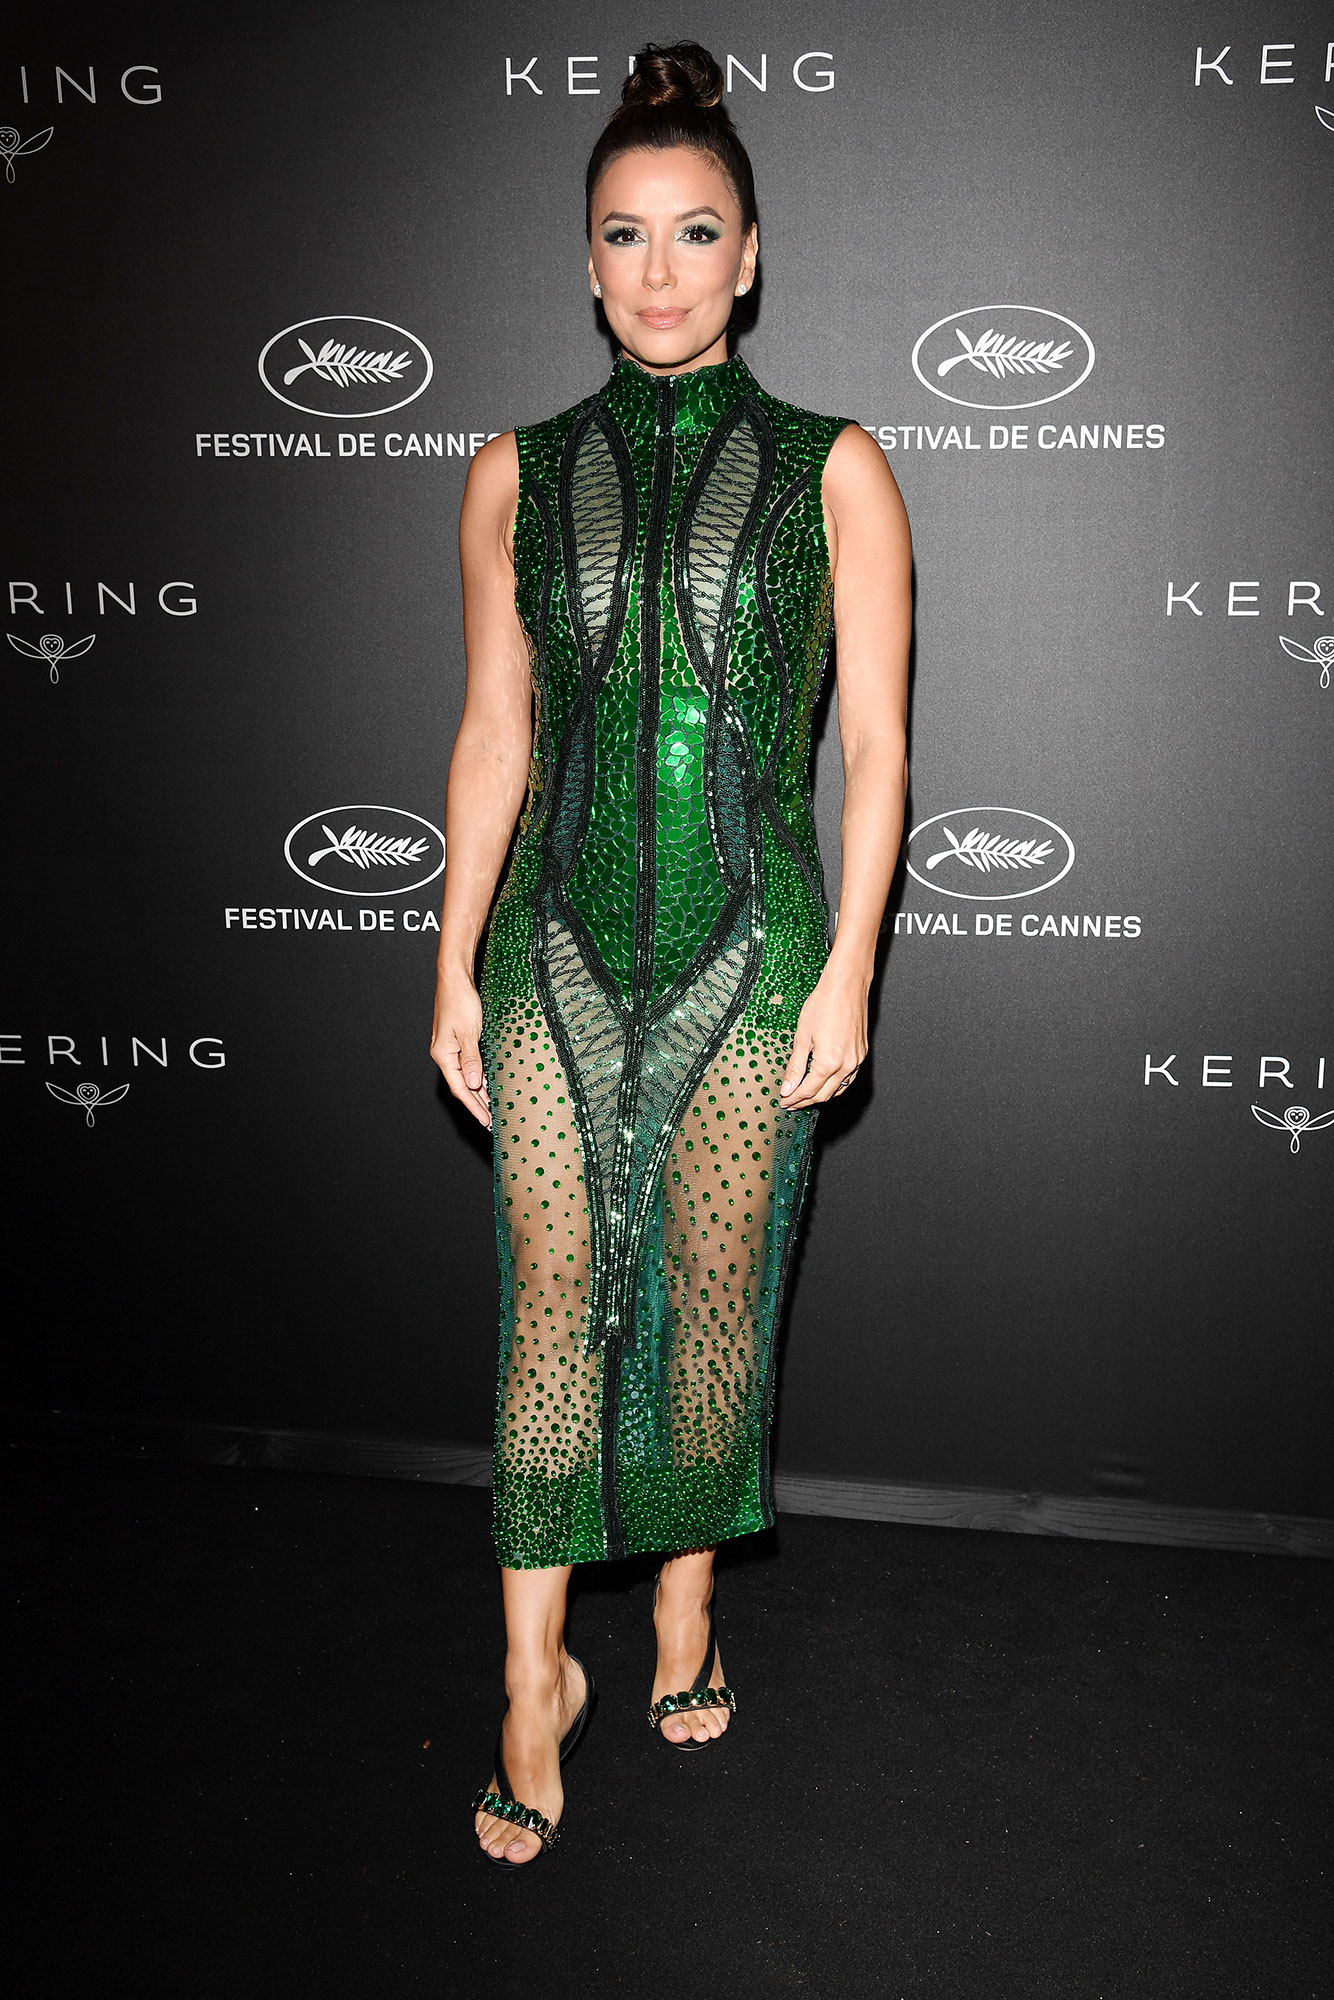 Eva Longoria Stepping Out in Style at Cannes Film Festival - The only thing better than the actress' sexy Atelier Zuhra midi and Olgana Paris jewels at the Kering dinner on Sunday, May 19? Her matching emerald eye makeup.